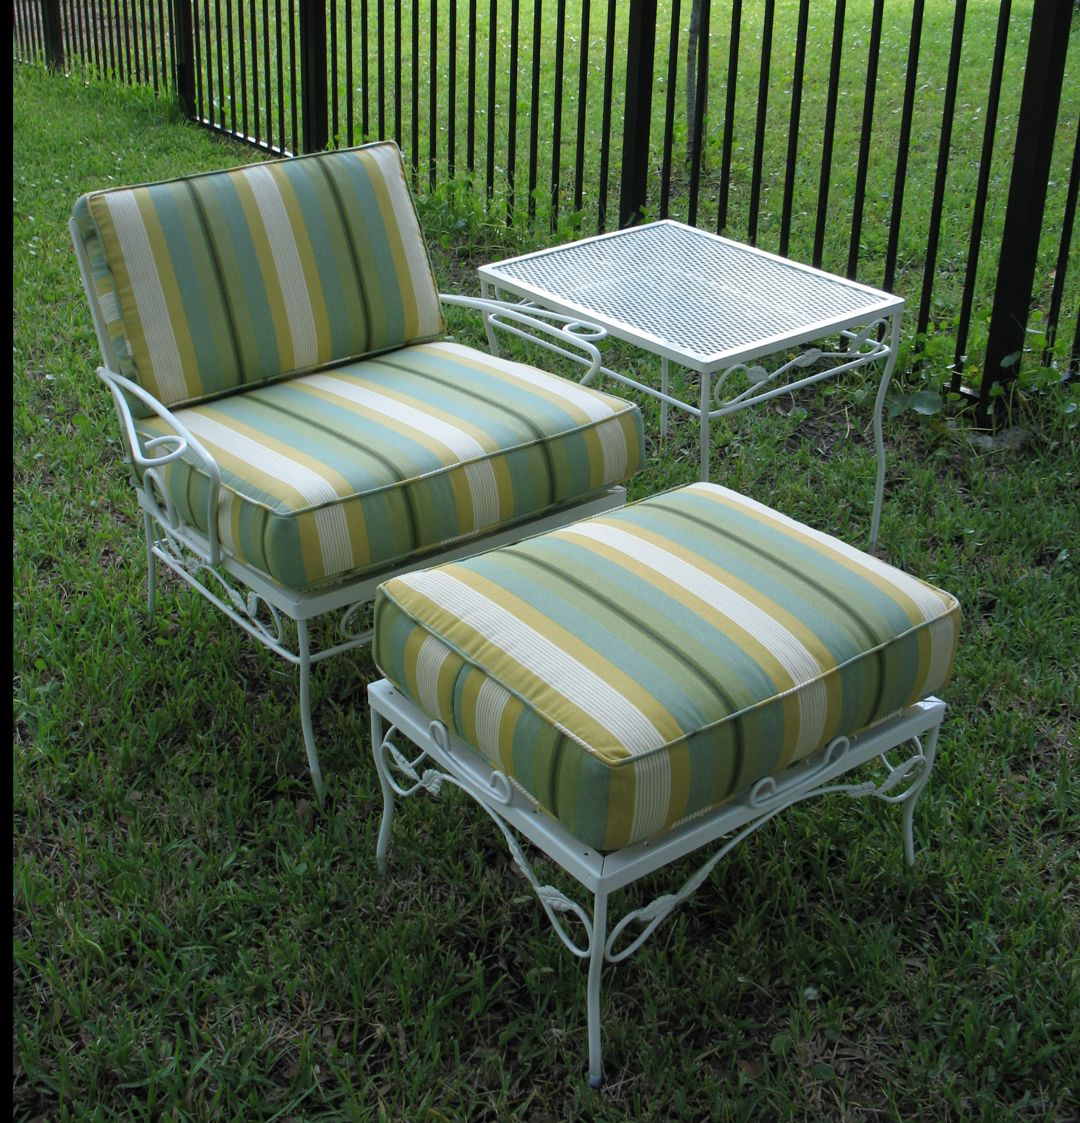 Garden Furniture Vintage vintage metal furniture | vintage patio furniture | mulberry